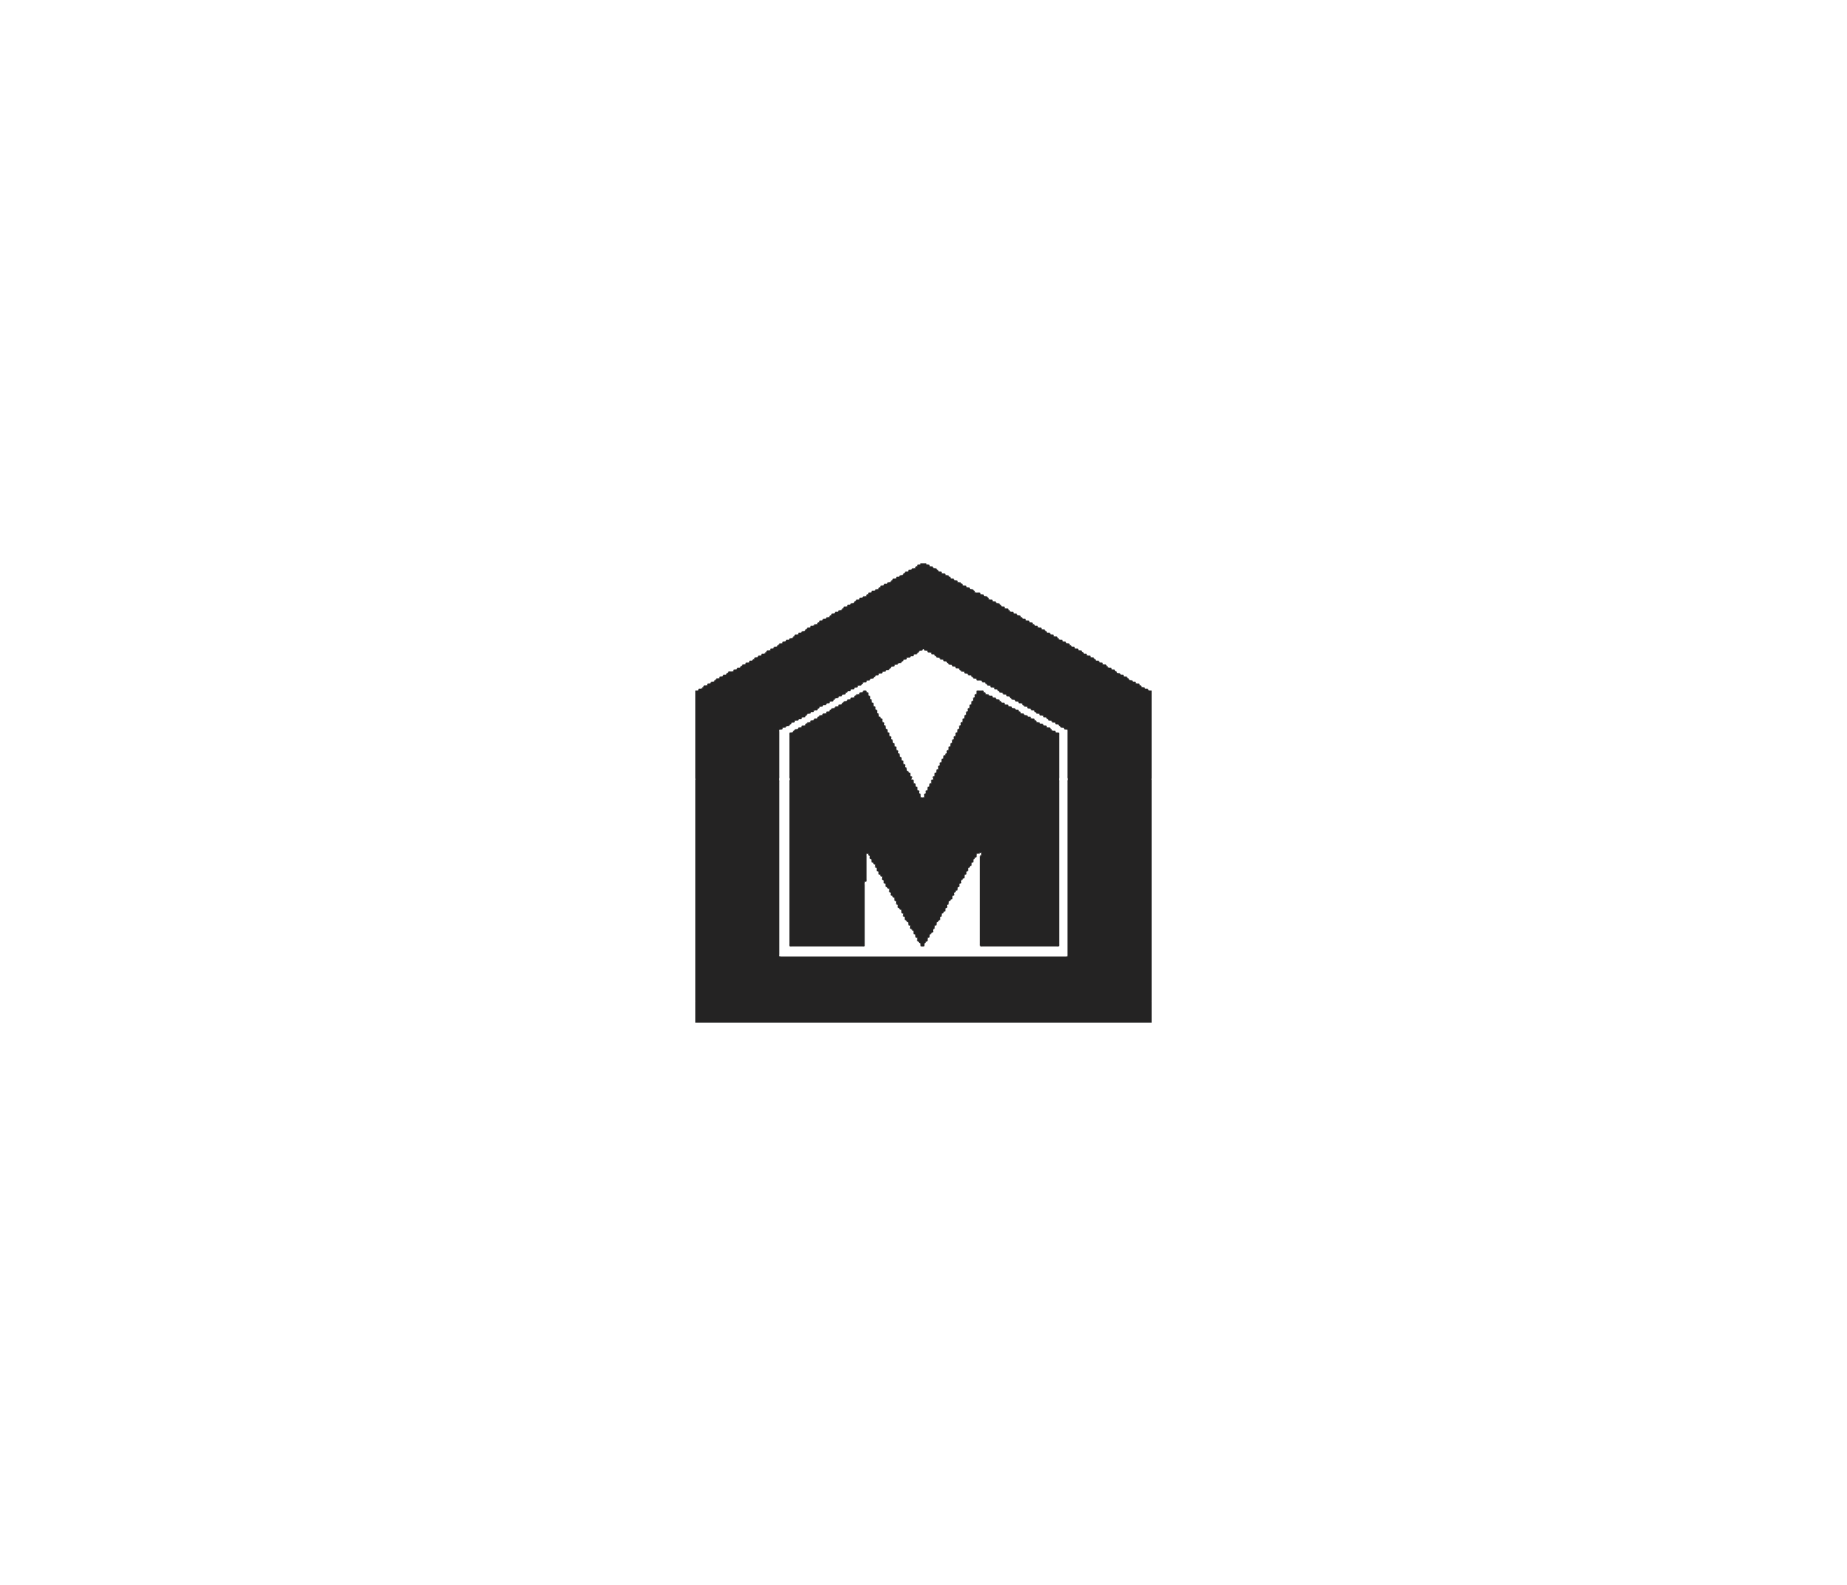 motive%20logo_edited